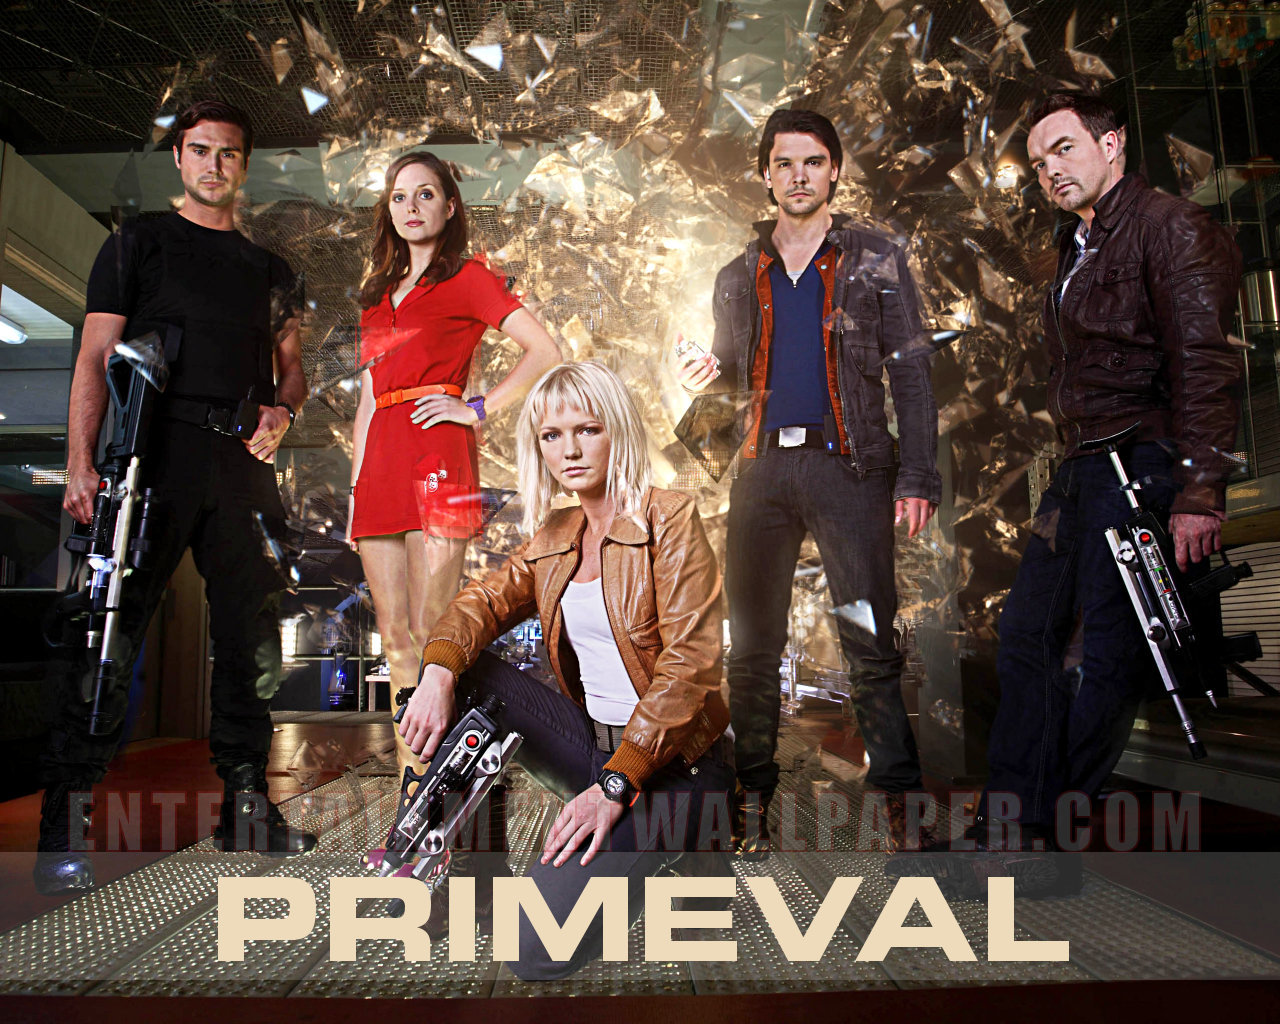 Primeval Images Primeval Hd Wallpaper And Background